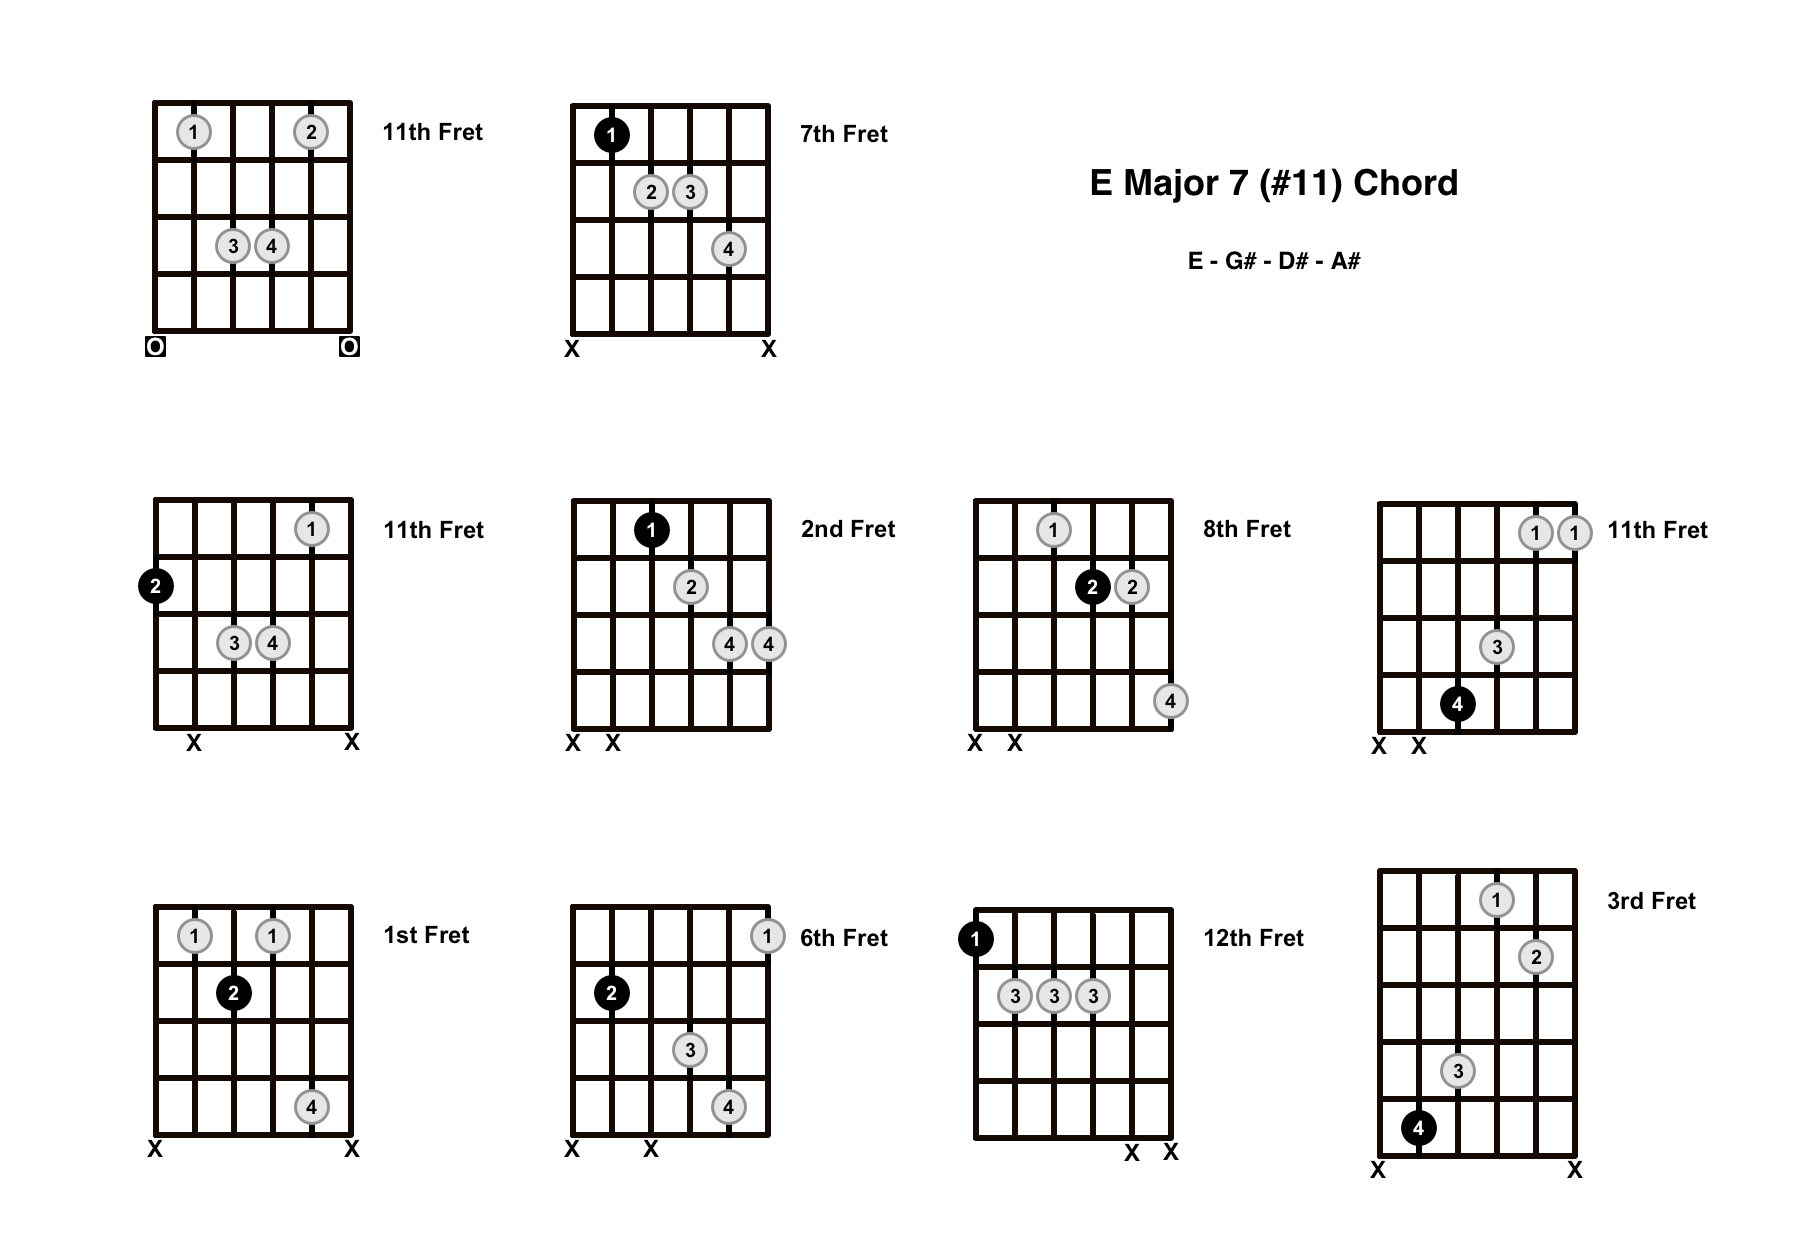 Emaj7#11 Chord On The Guitar (E Major 7 #11) – Diagrams, Finger Positions and Theory